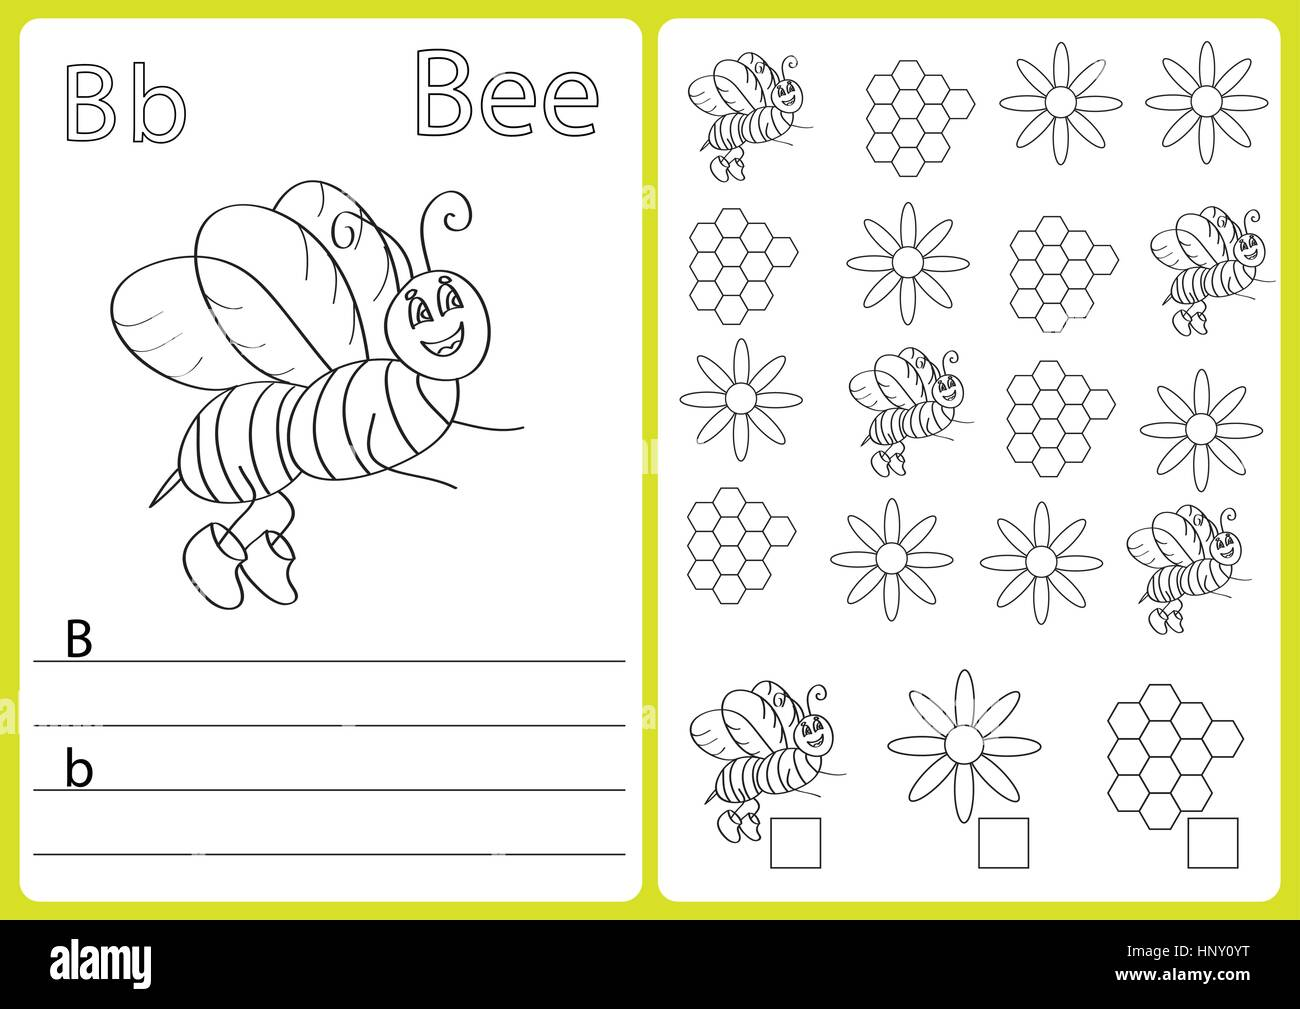 Alphabet Worksheet Letter Stockfotos & Alphabet Worksheet Letter ...